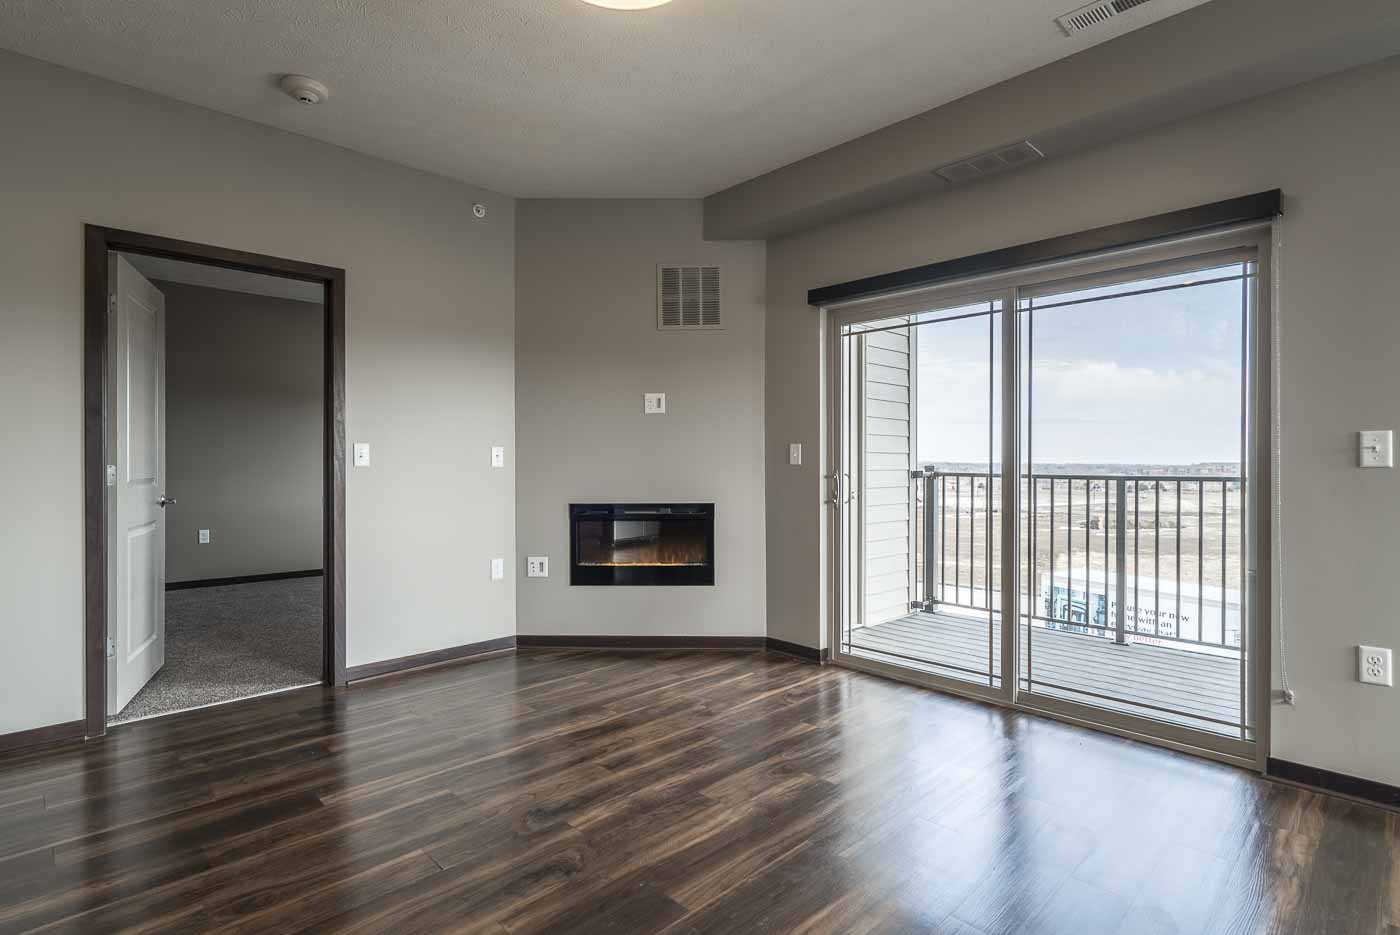 Hardwood Floor Refinishing Des Moines Iowa Of Studio One Two Three Bedroom Apartments Rent 360 at Jordan West for Picasso C3 Floor Plan 360 at Jordan West New Luxury Apartments In Des Moines